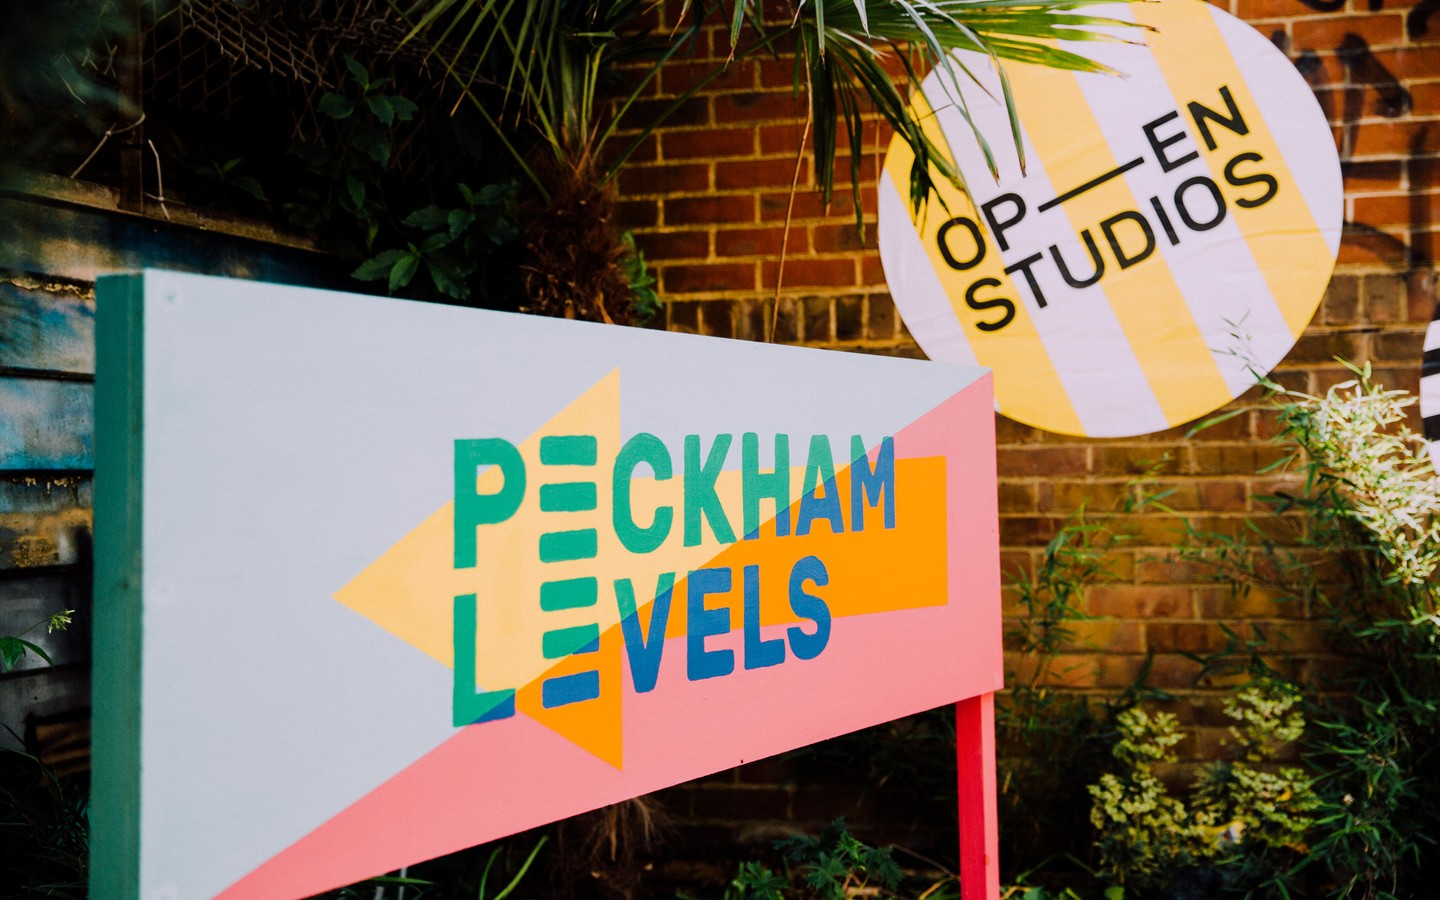 Winter Open Studios and Peckham Levels 1st Birthday || Friday 30th November to Sunday 2nd December.